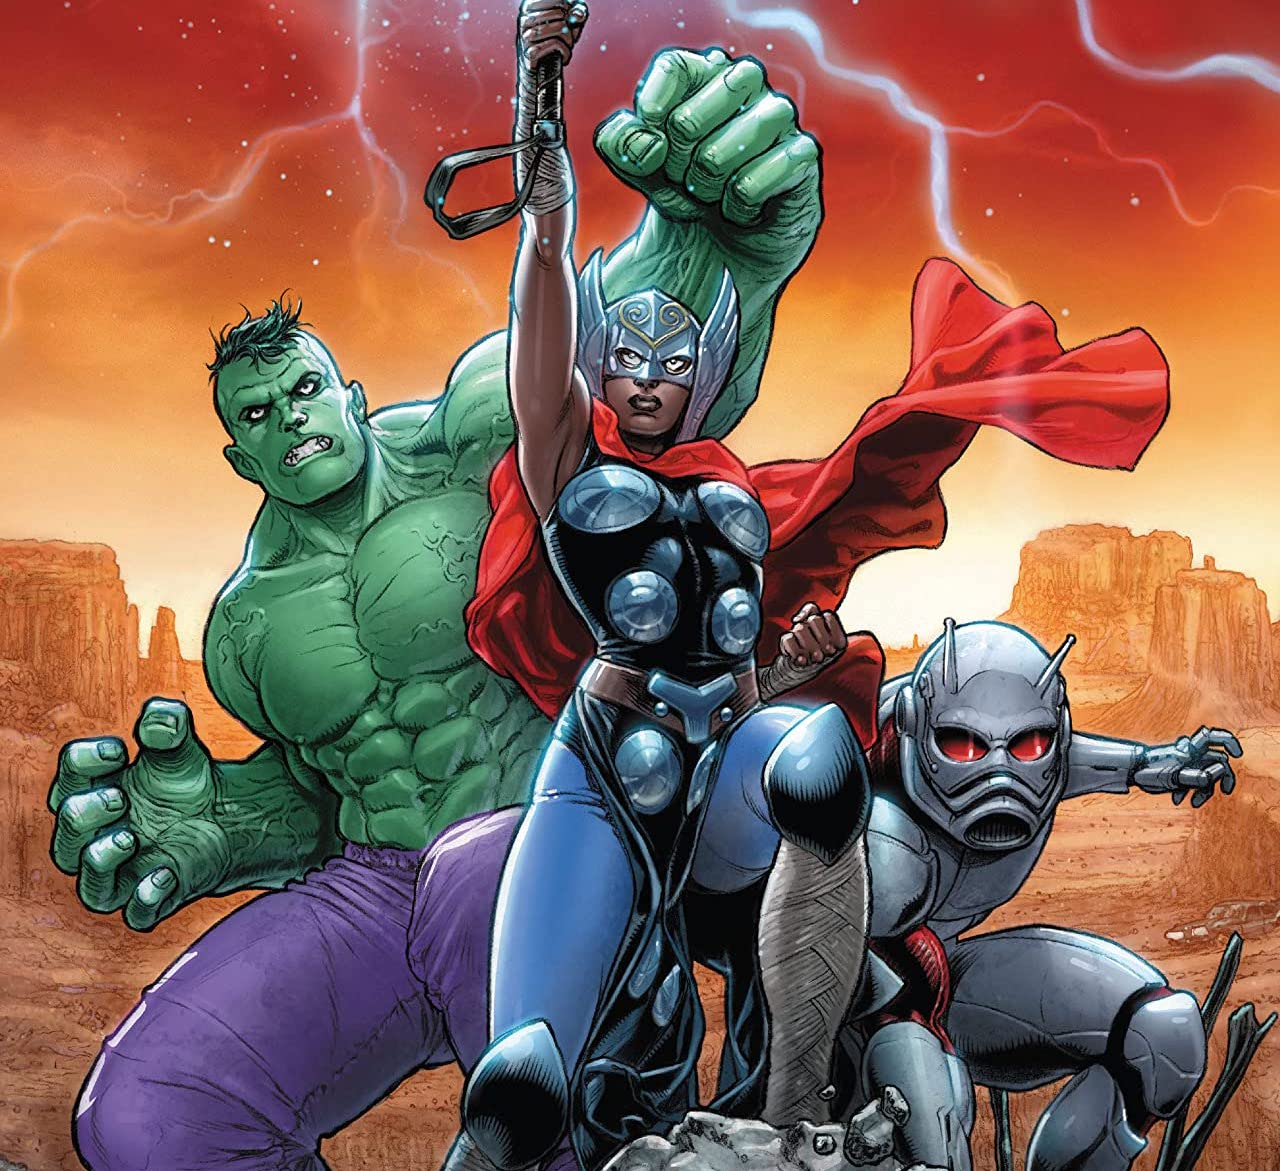 3 Reasons Why 'Avengers of the Wastelands' is an inspiring story of hope